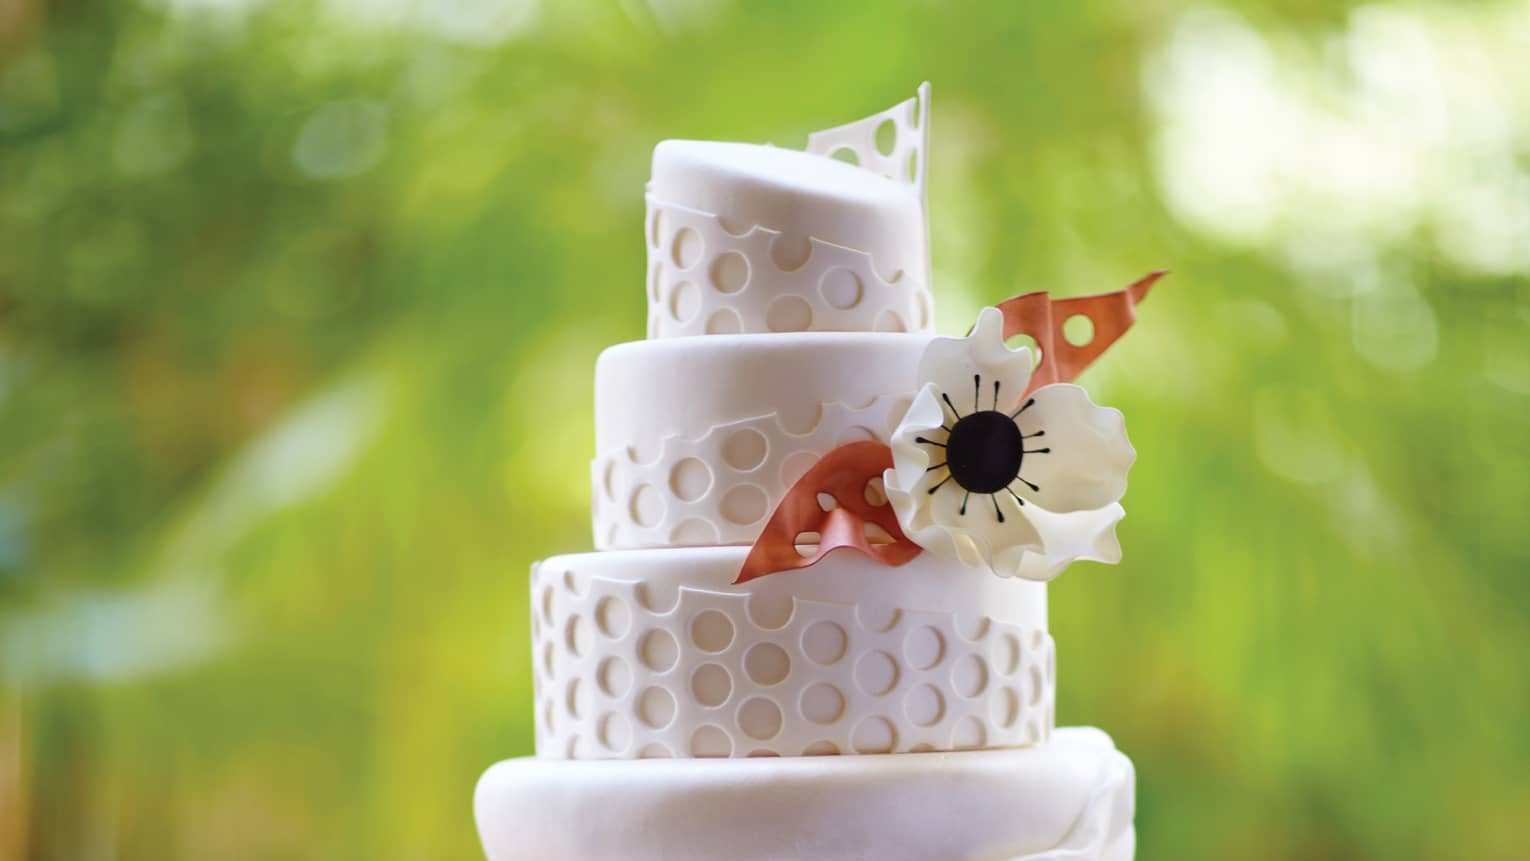 Small four tiered wedding cake decorated with fondant pattern, flower